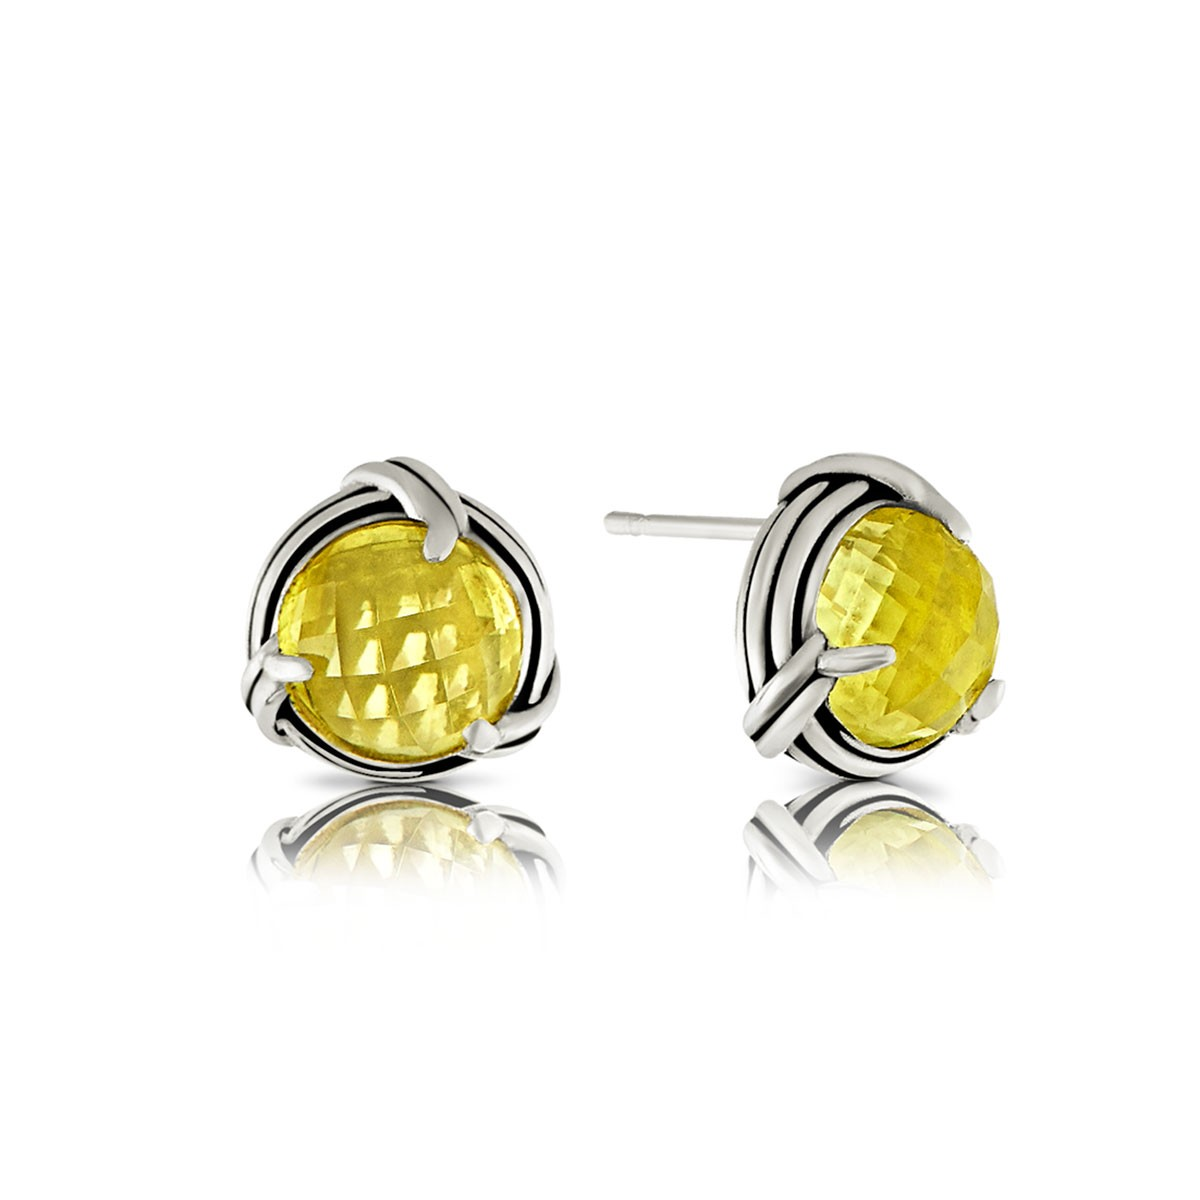 earring from lamoon gold earrings citrine sterling stud jewelry bee silver item natural plated yellow in